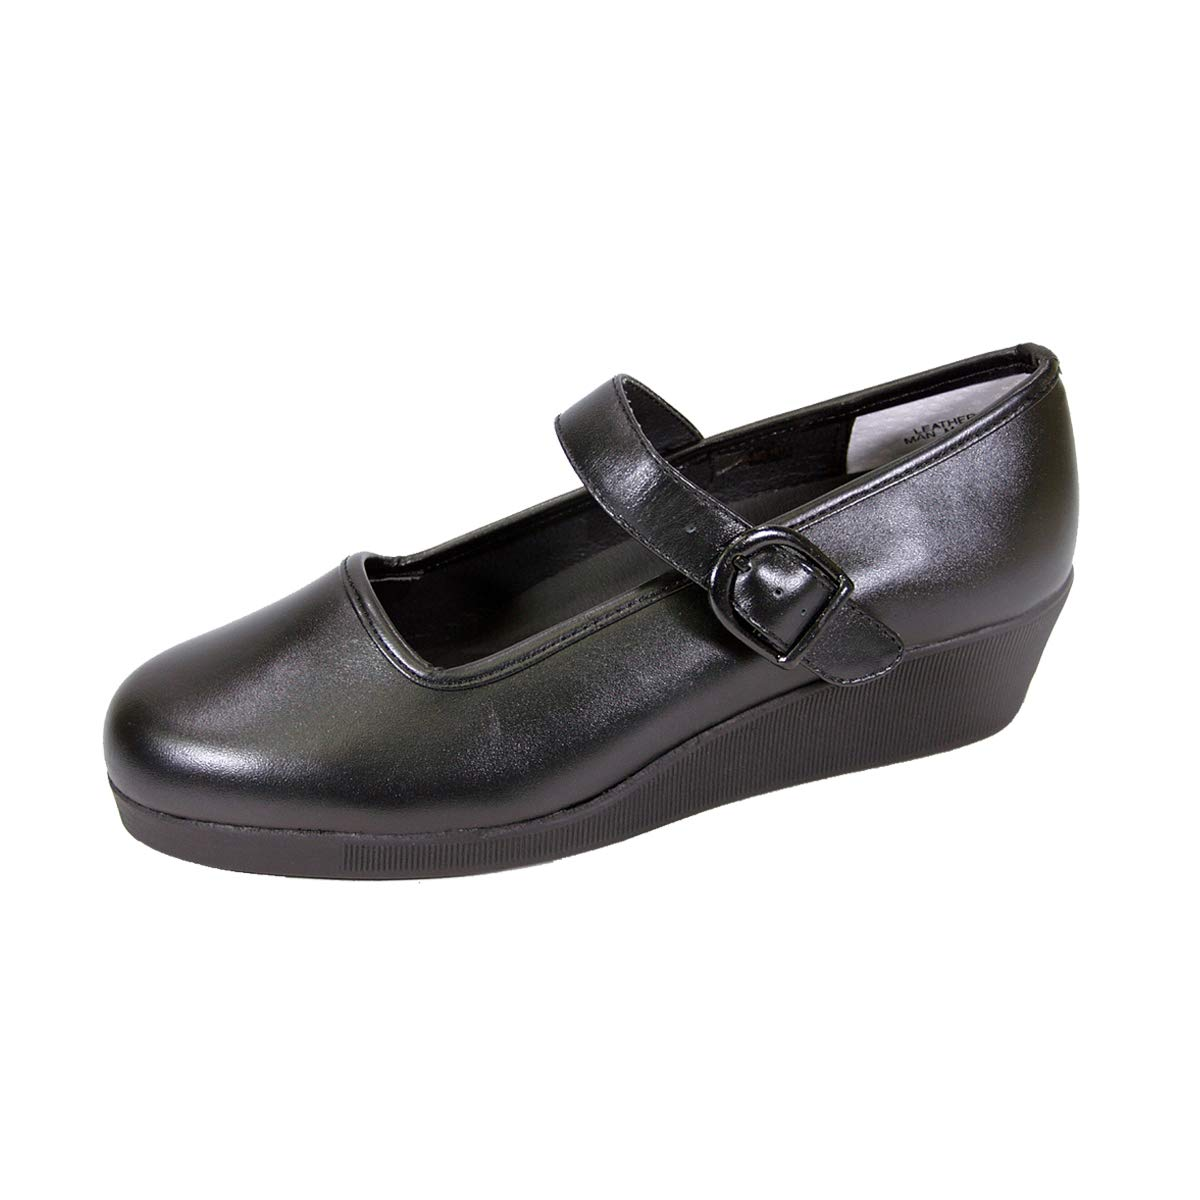 24 Hour Comfort Justine Womens Wide Width Leather Mary Jane Wedge Shoes